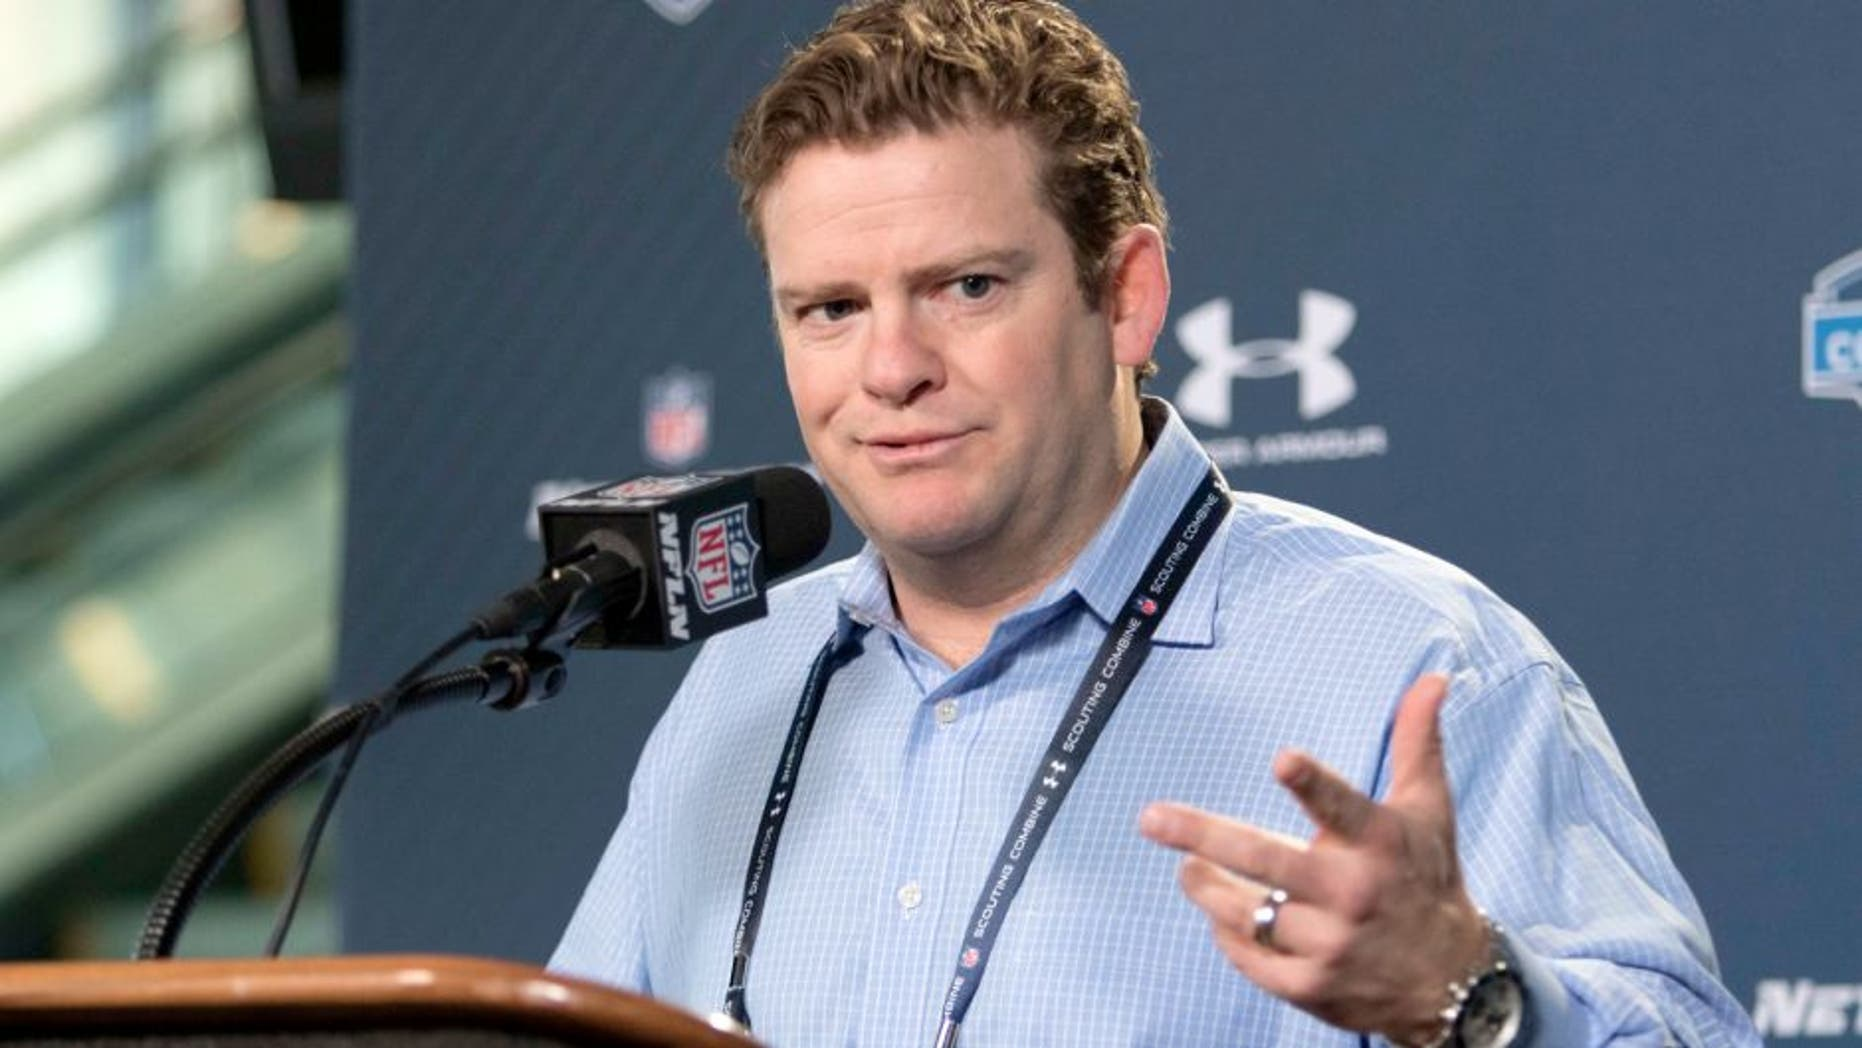 Feb 19, 2015; Indianapolis, IN, USA; Seattle Seahawks general manager John Schneider speaks to the media at the 2015 NFL Combine at Lucas Oil Stadium. Mandatory Credit: Trevor Ruszkowski-USA TODAY Sports